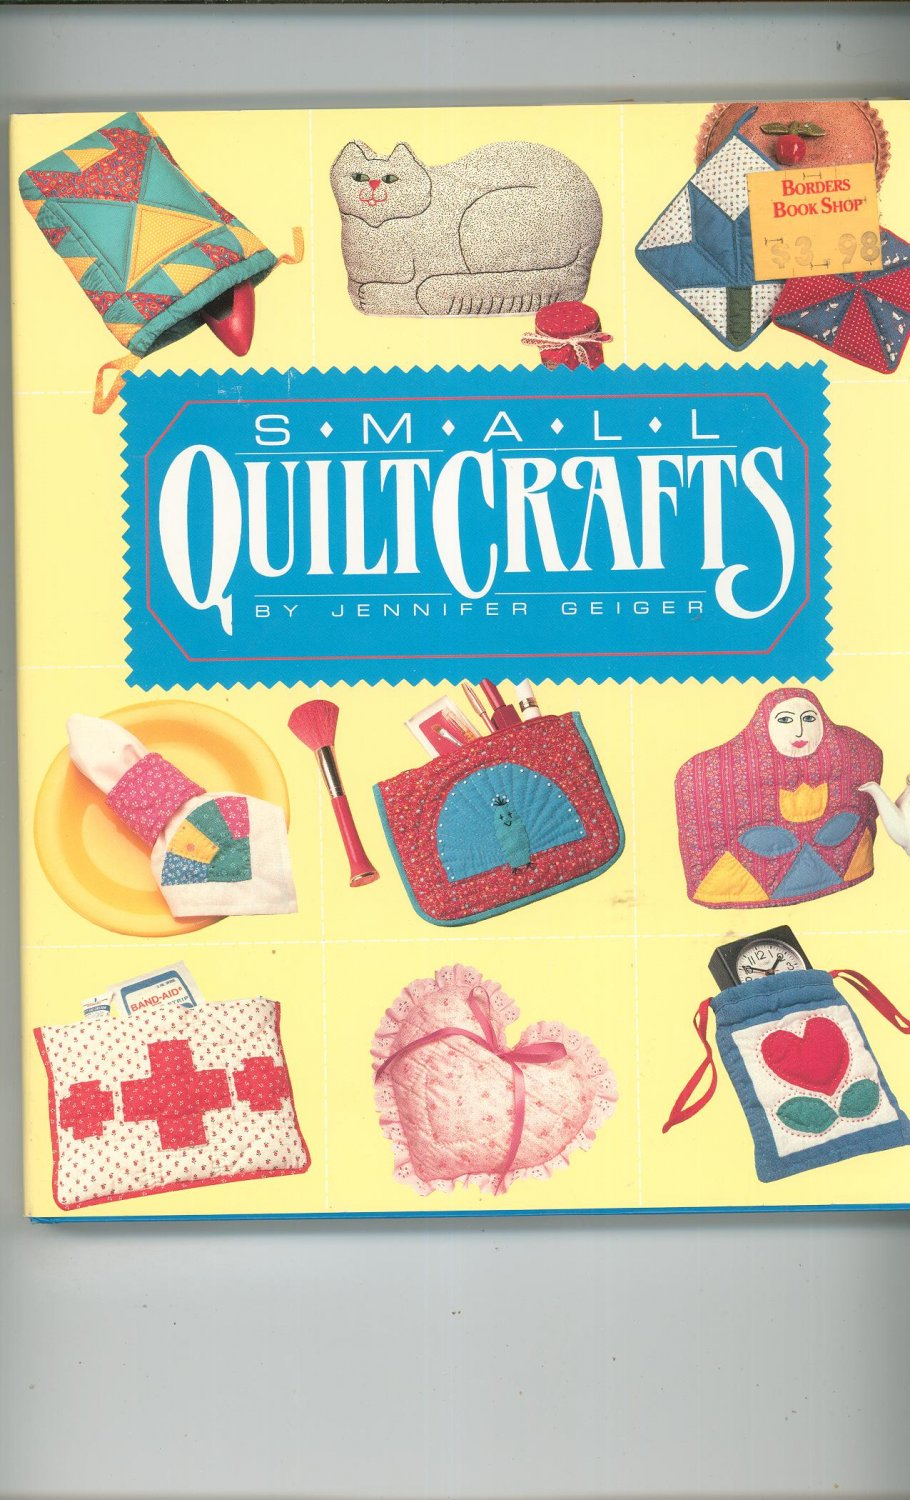 Small Quilt Crafts By Jennifer Geiger 0696023199 First Edition